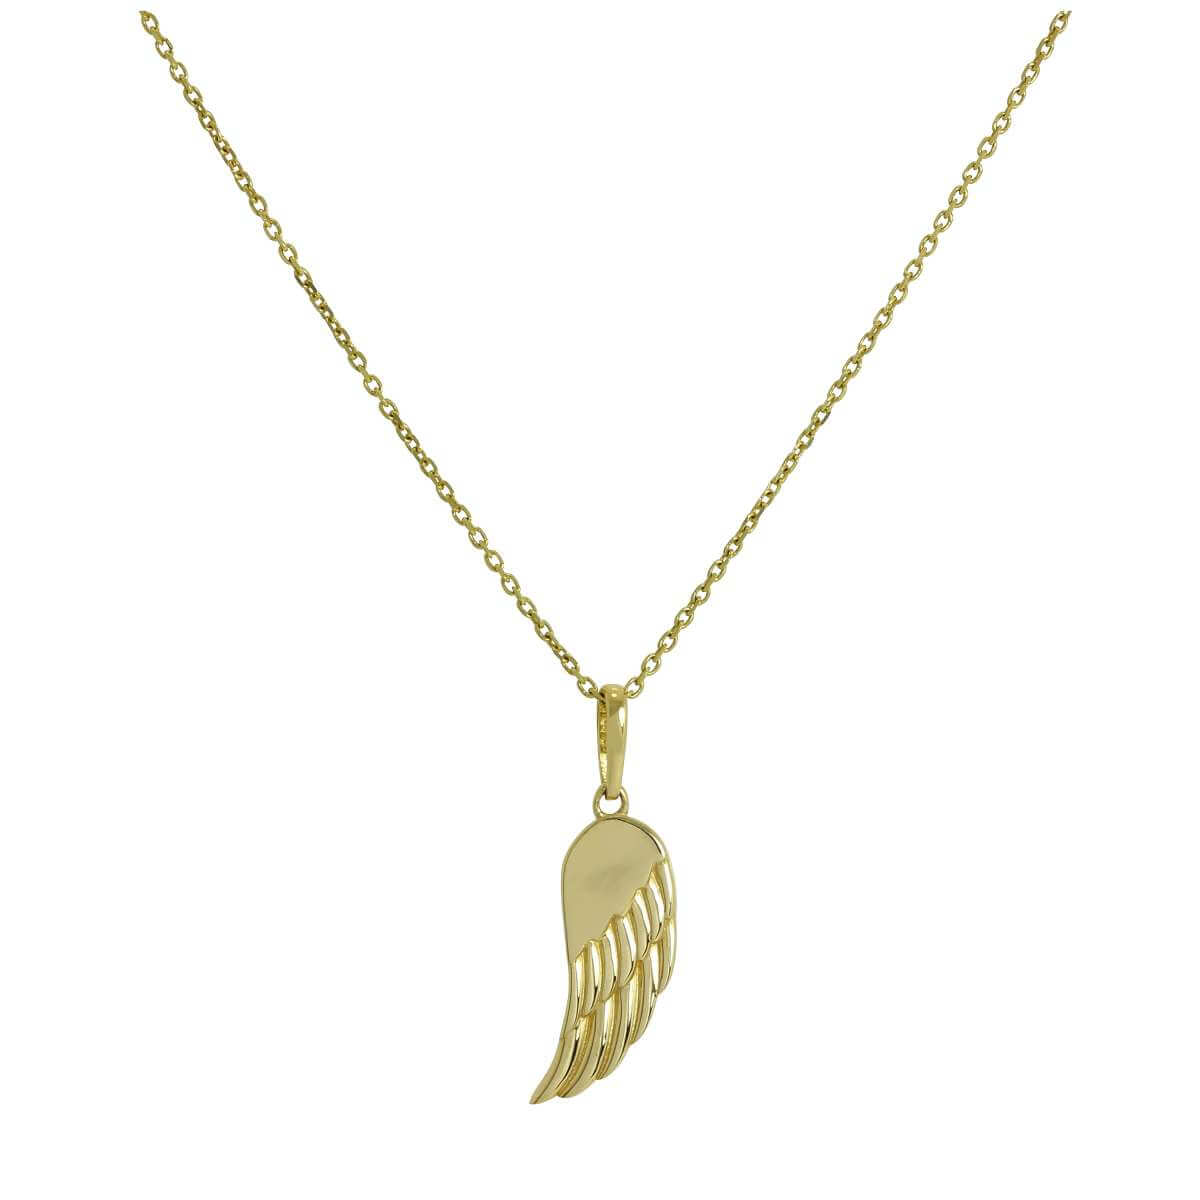 9ct Gold Angel Wing Pendant Necklace 16 - 20 Inches